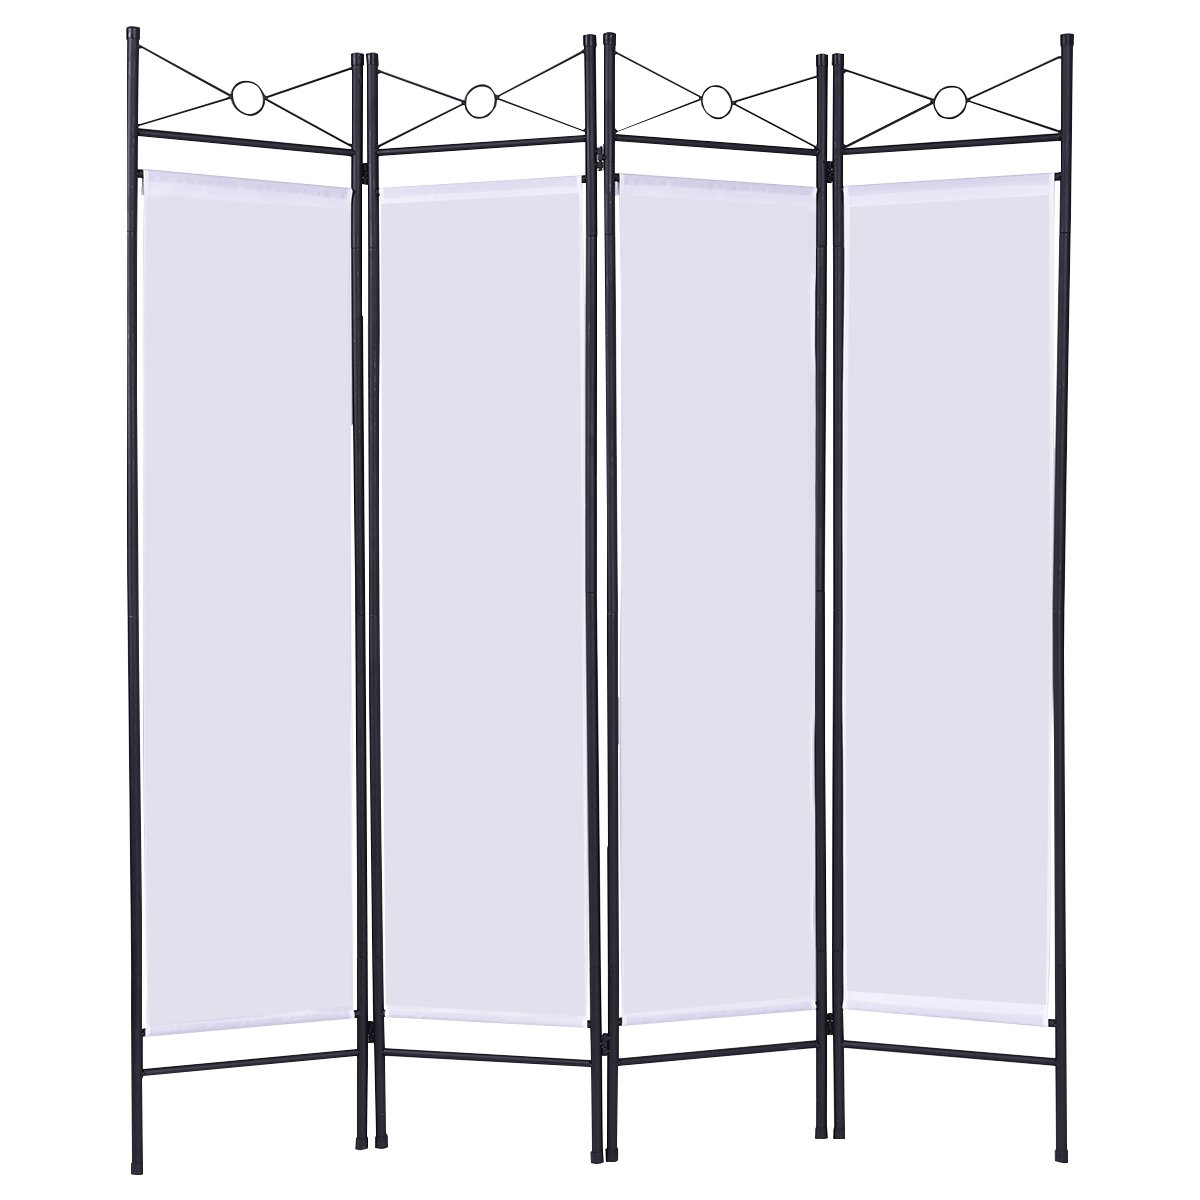 CASART Folding Room Divider Screen 4 Panel Partition Wall Furniture Privacy Separator Paravent 180 x 160cm (Black)